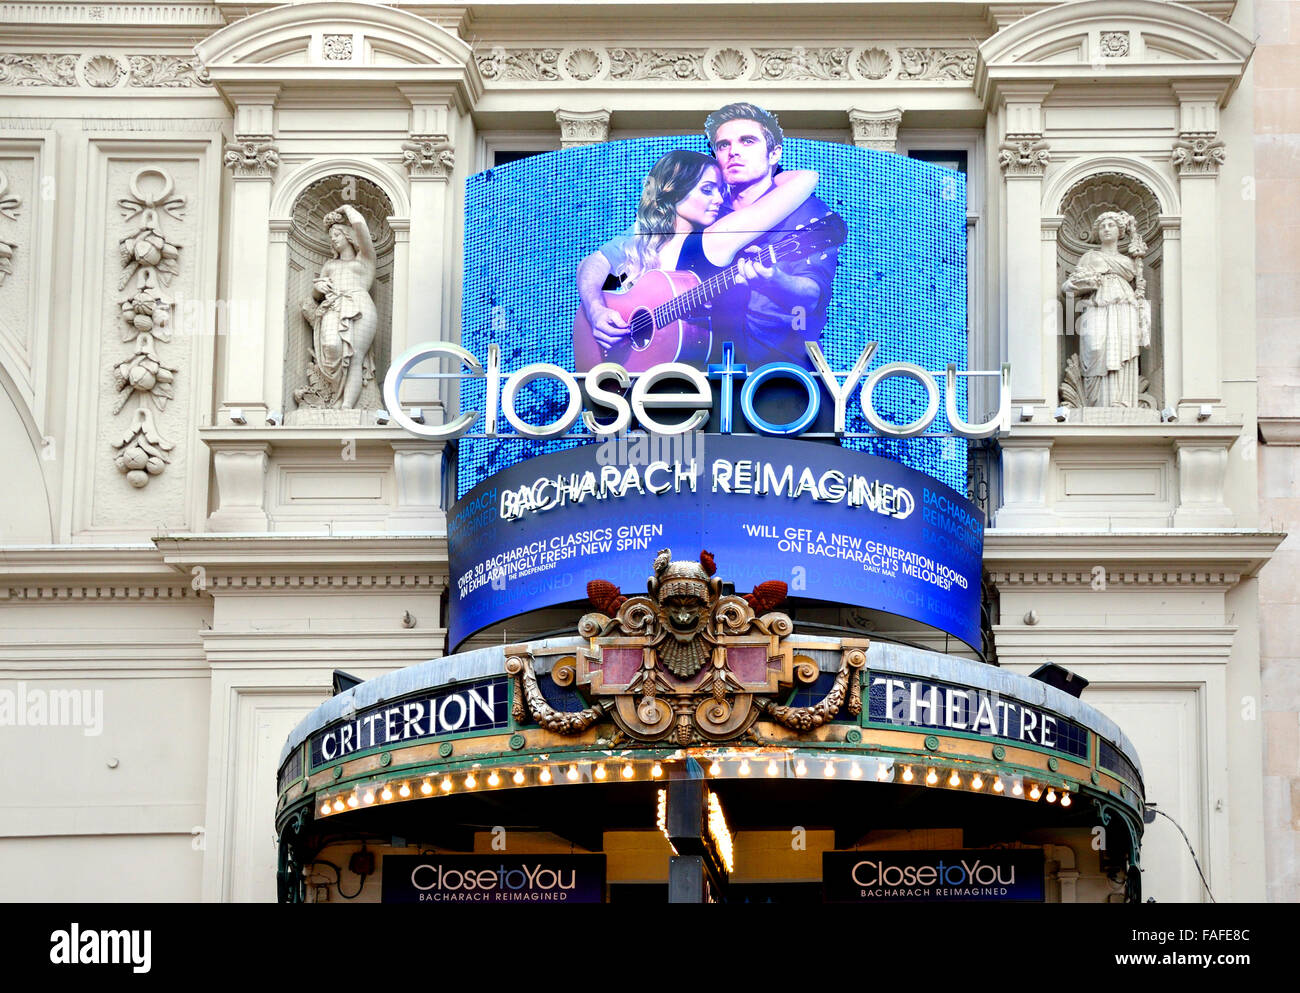 London, England, UK. 'Close To You - Burt Bacharach Reimagined' at the Criterion Theatre, Piccadilly Circus - Stock Image